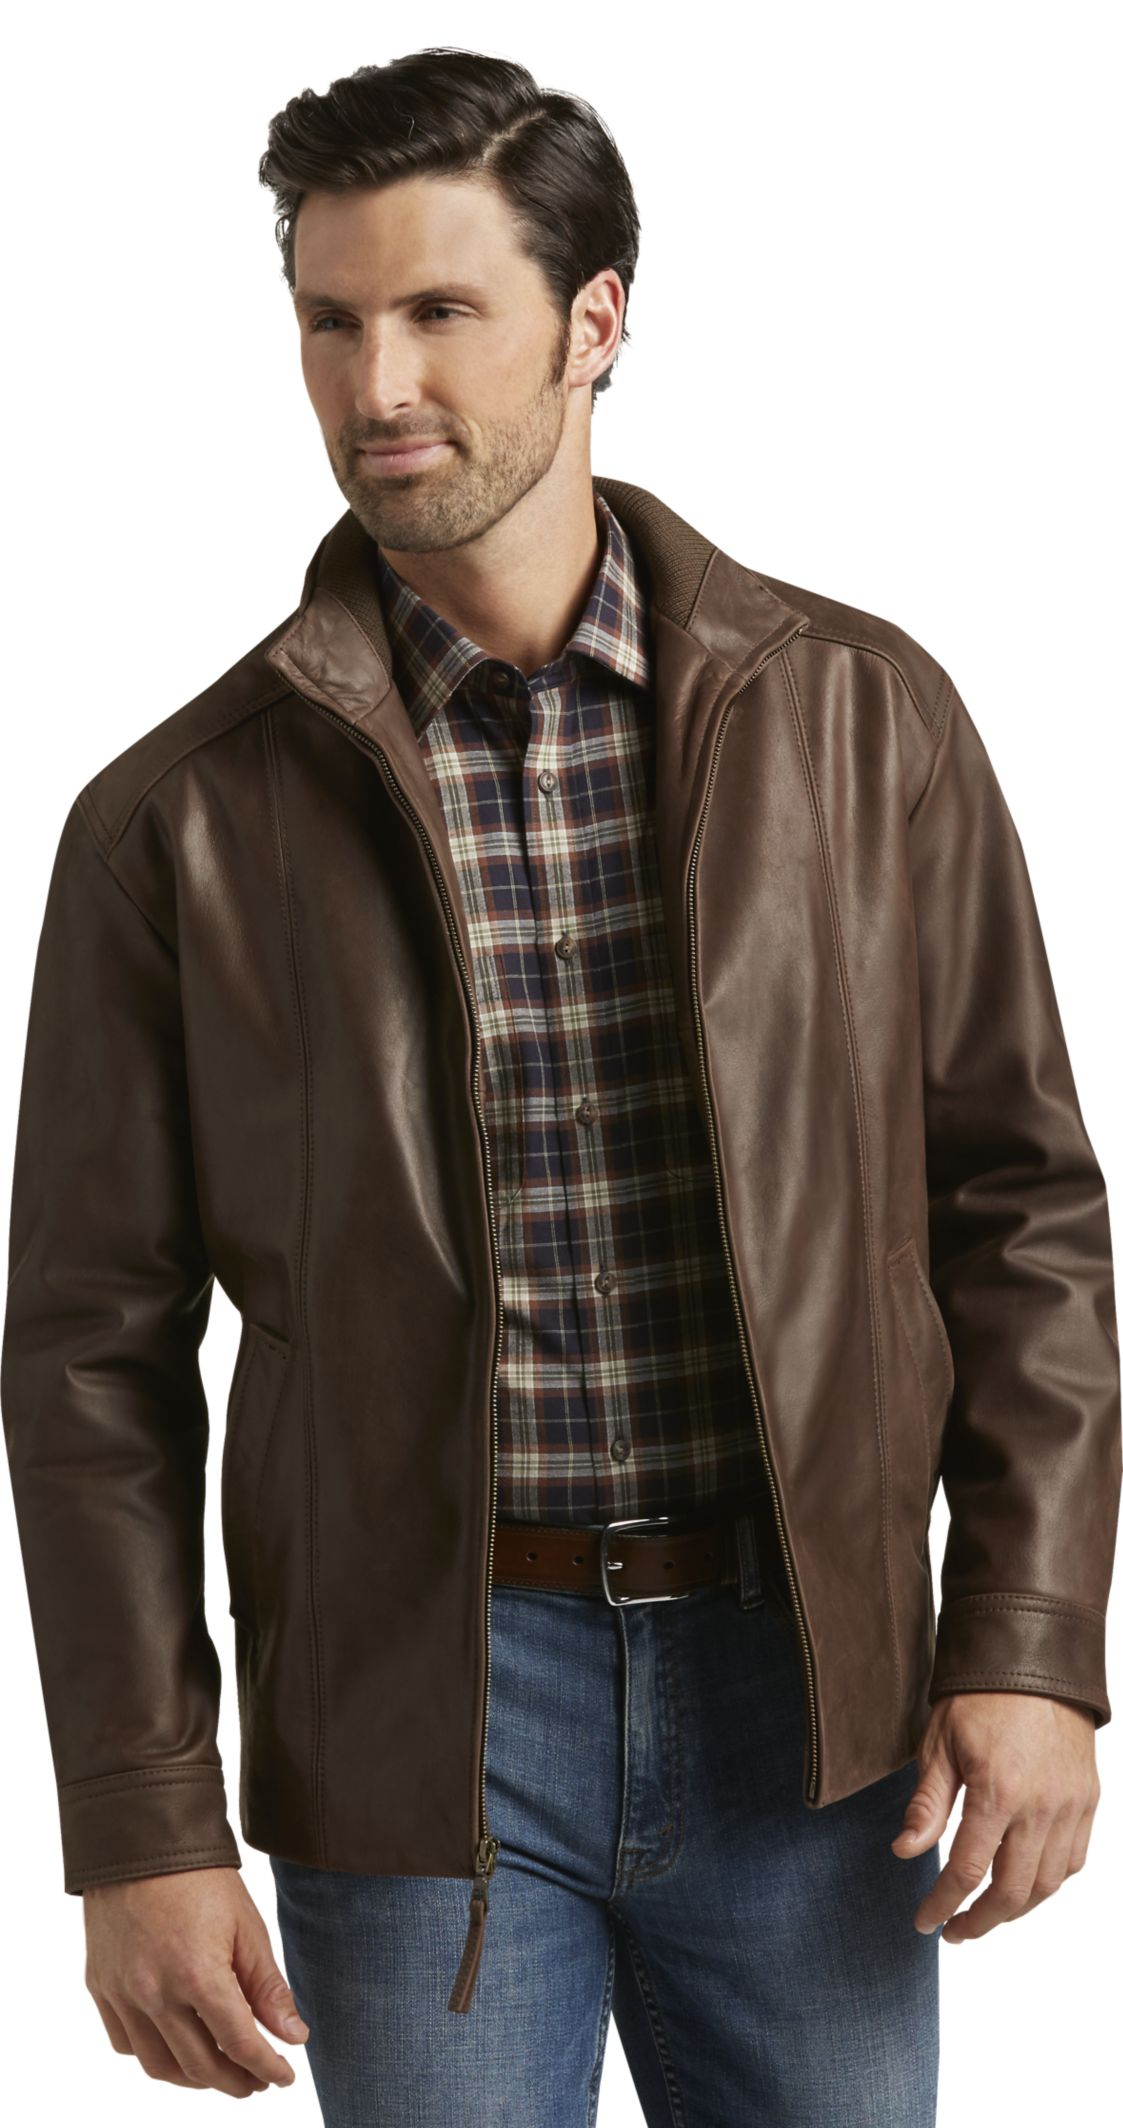 Men's Jackets, Trench Coats & Vests : Men's Outerwear | J.Crew